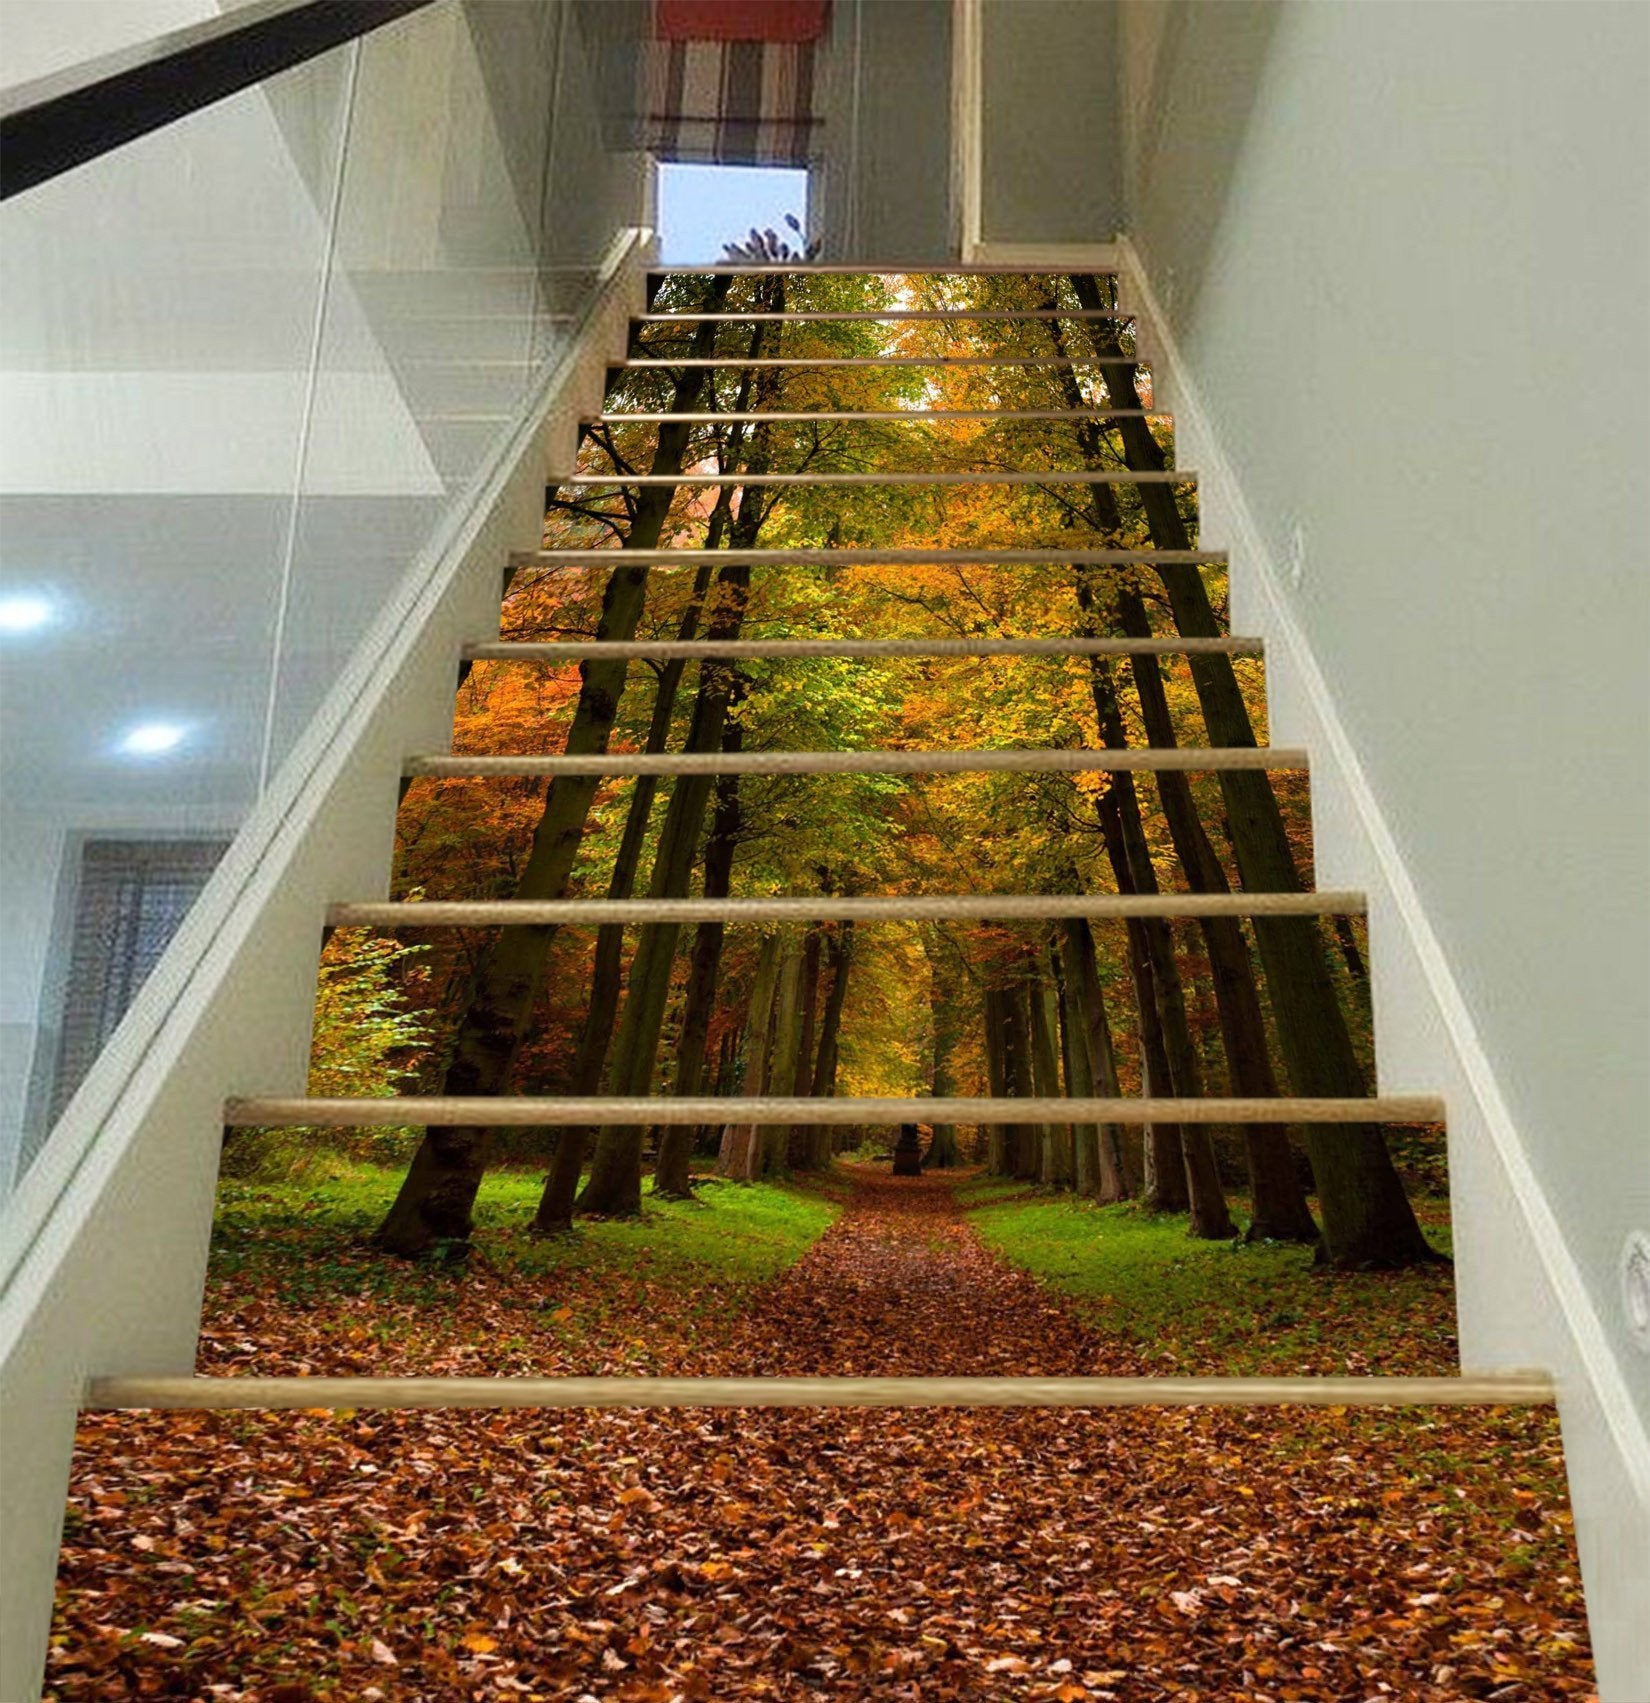 3D Color Forest Fallen Leaves 1553 Stair Risers Wallpaper AJ Wallpaper